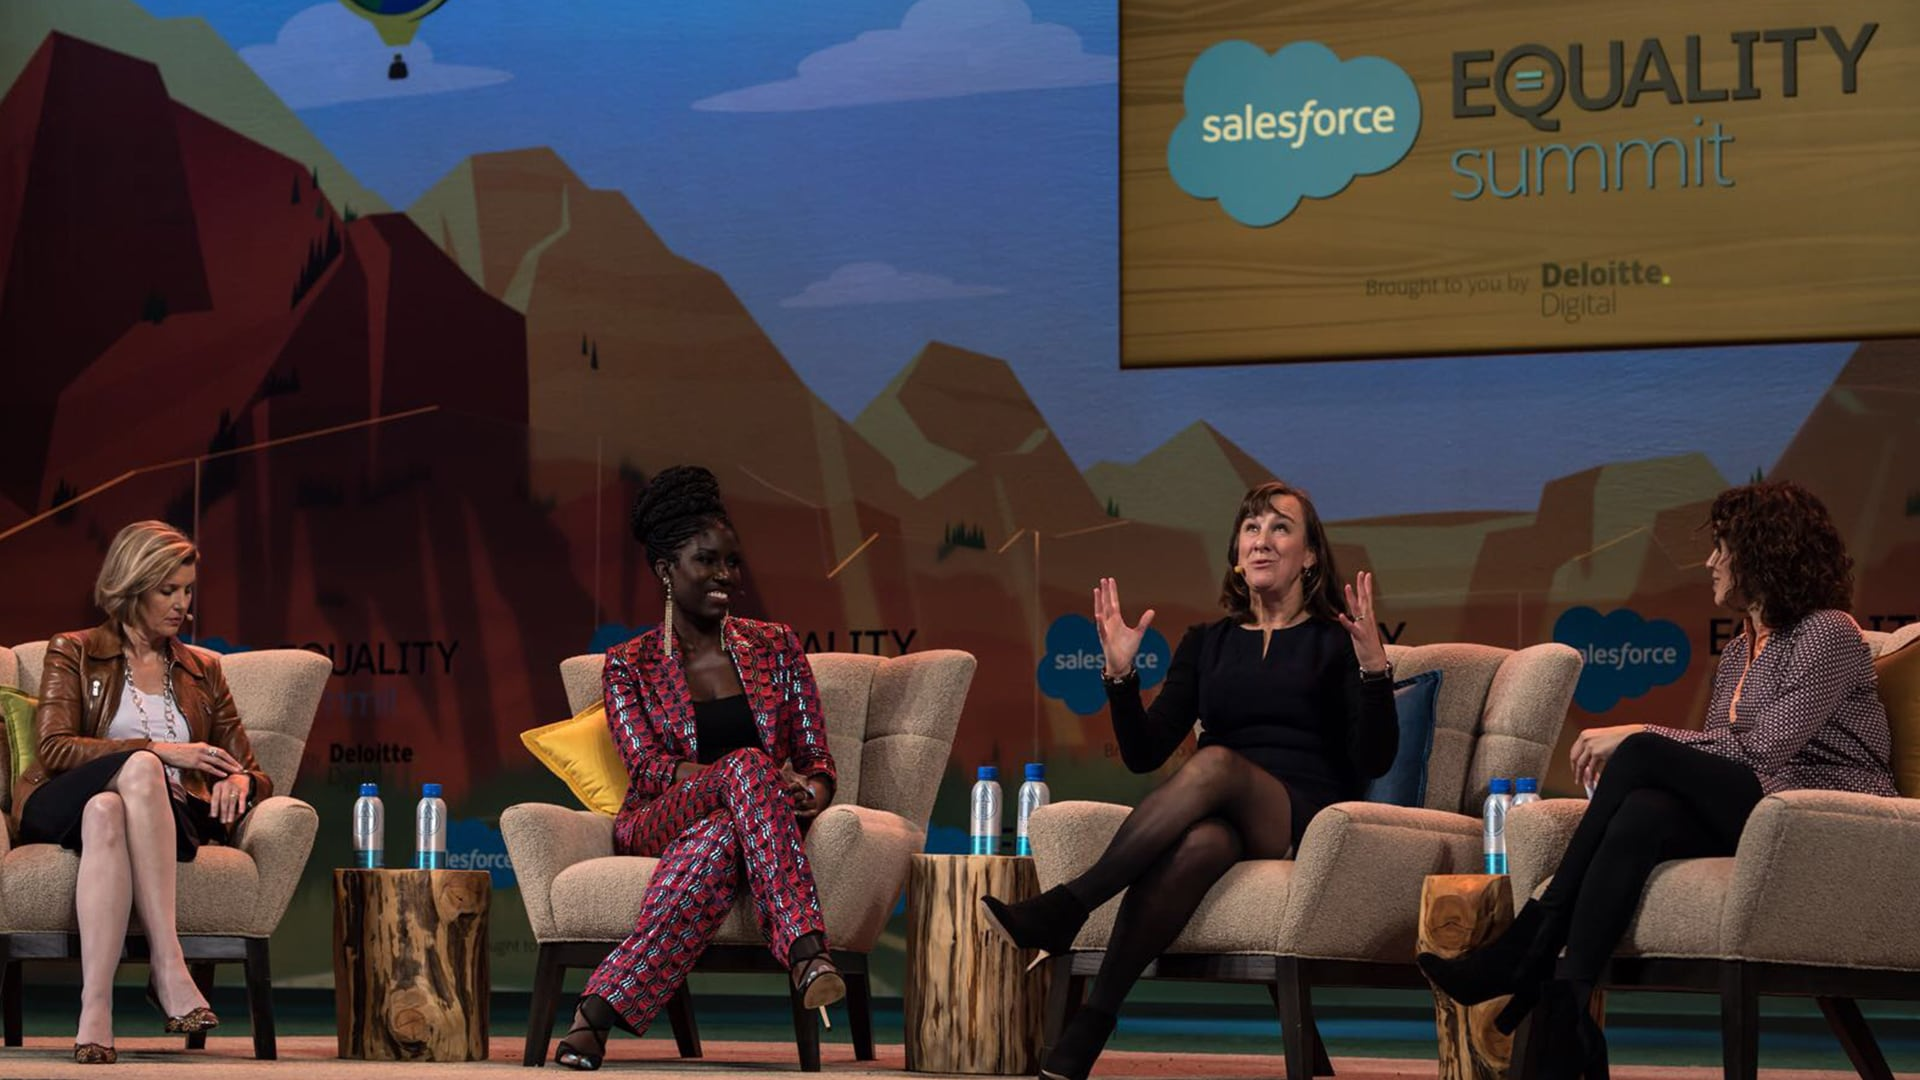 Equality summit panel at Dreamforce with Janet Foutty.